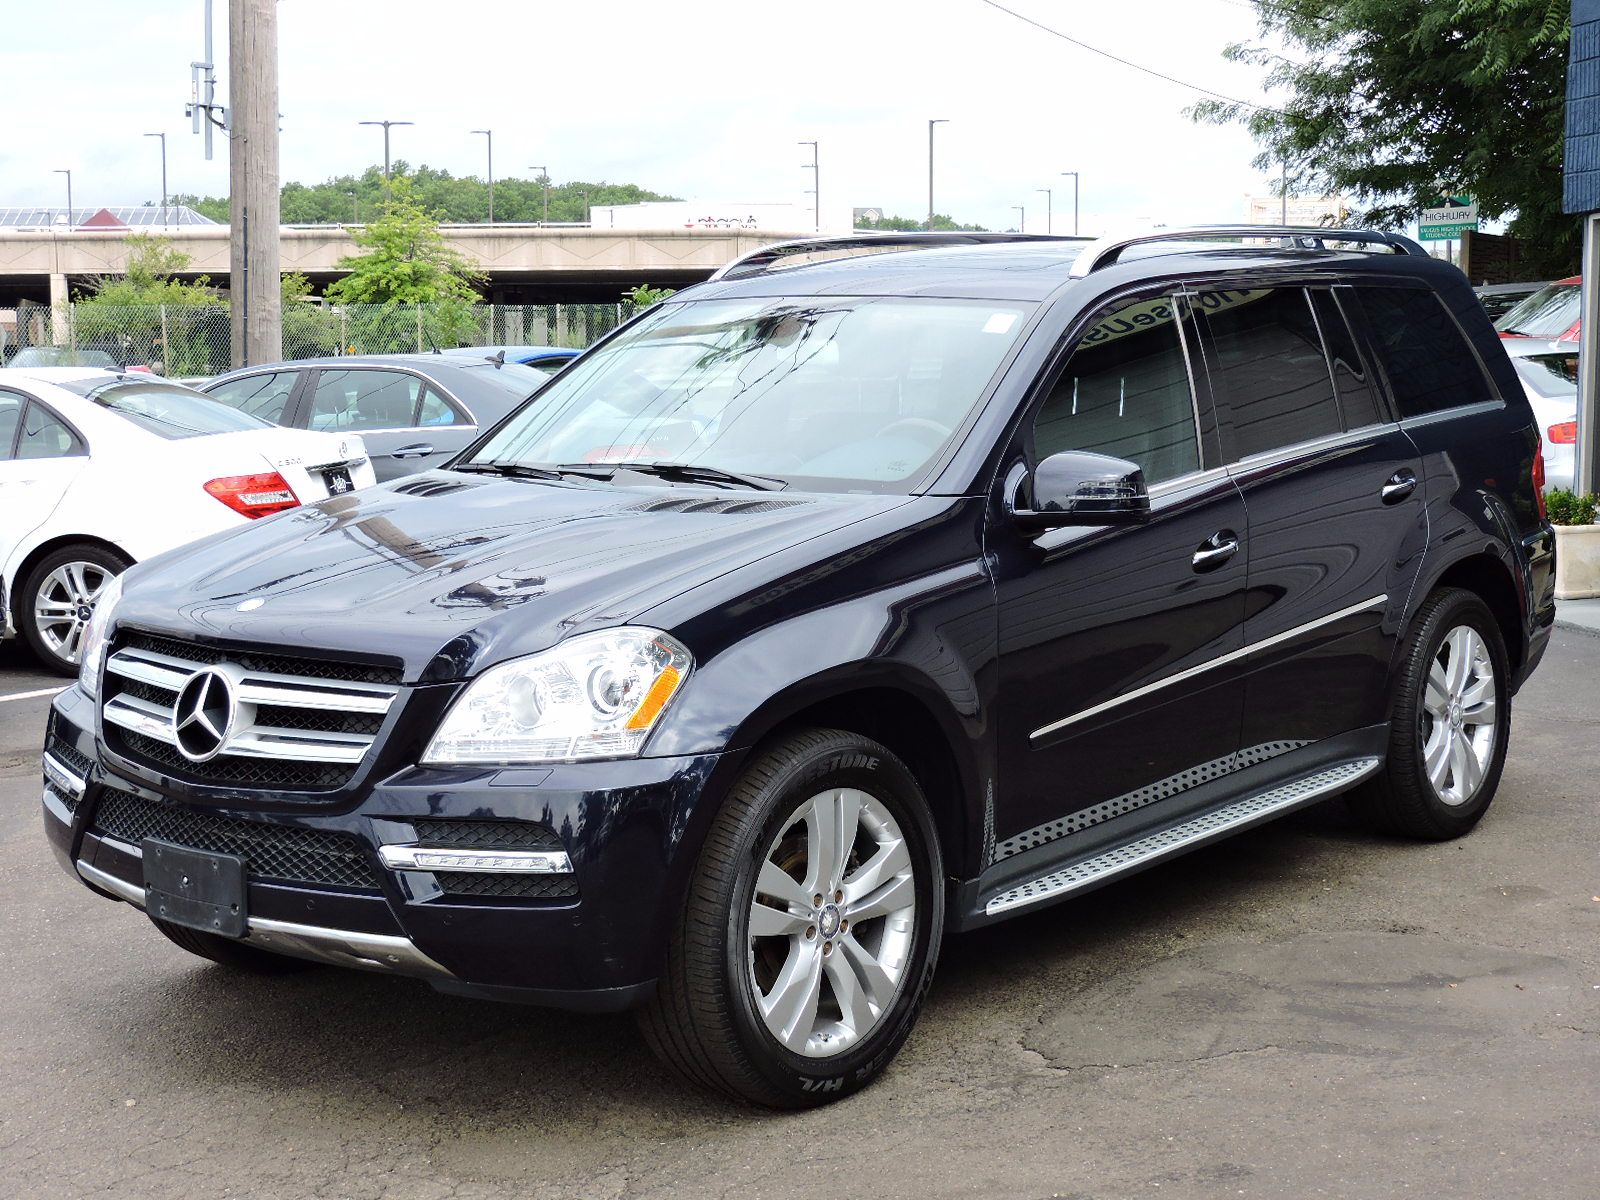 Used 2012 mercedes benz gl 450 techentertainment pkg at for 2012 mercedes benz gl class